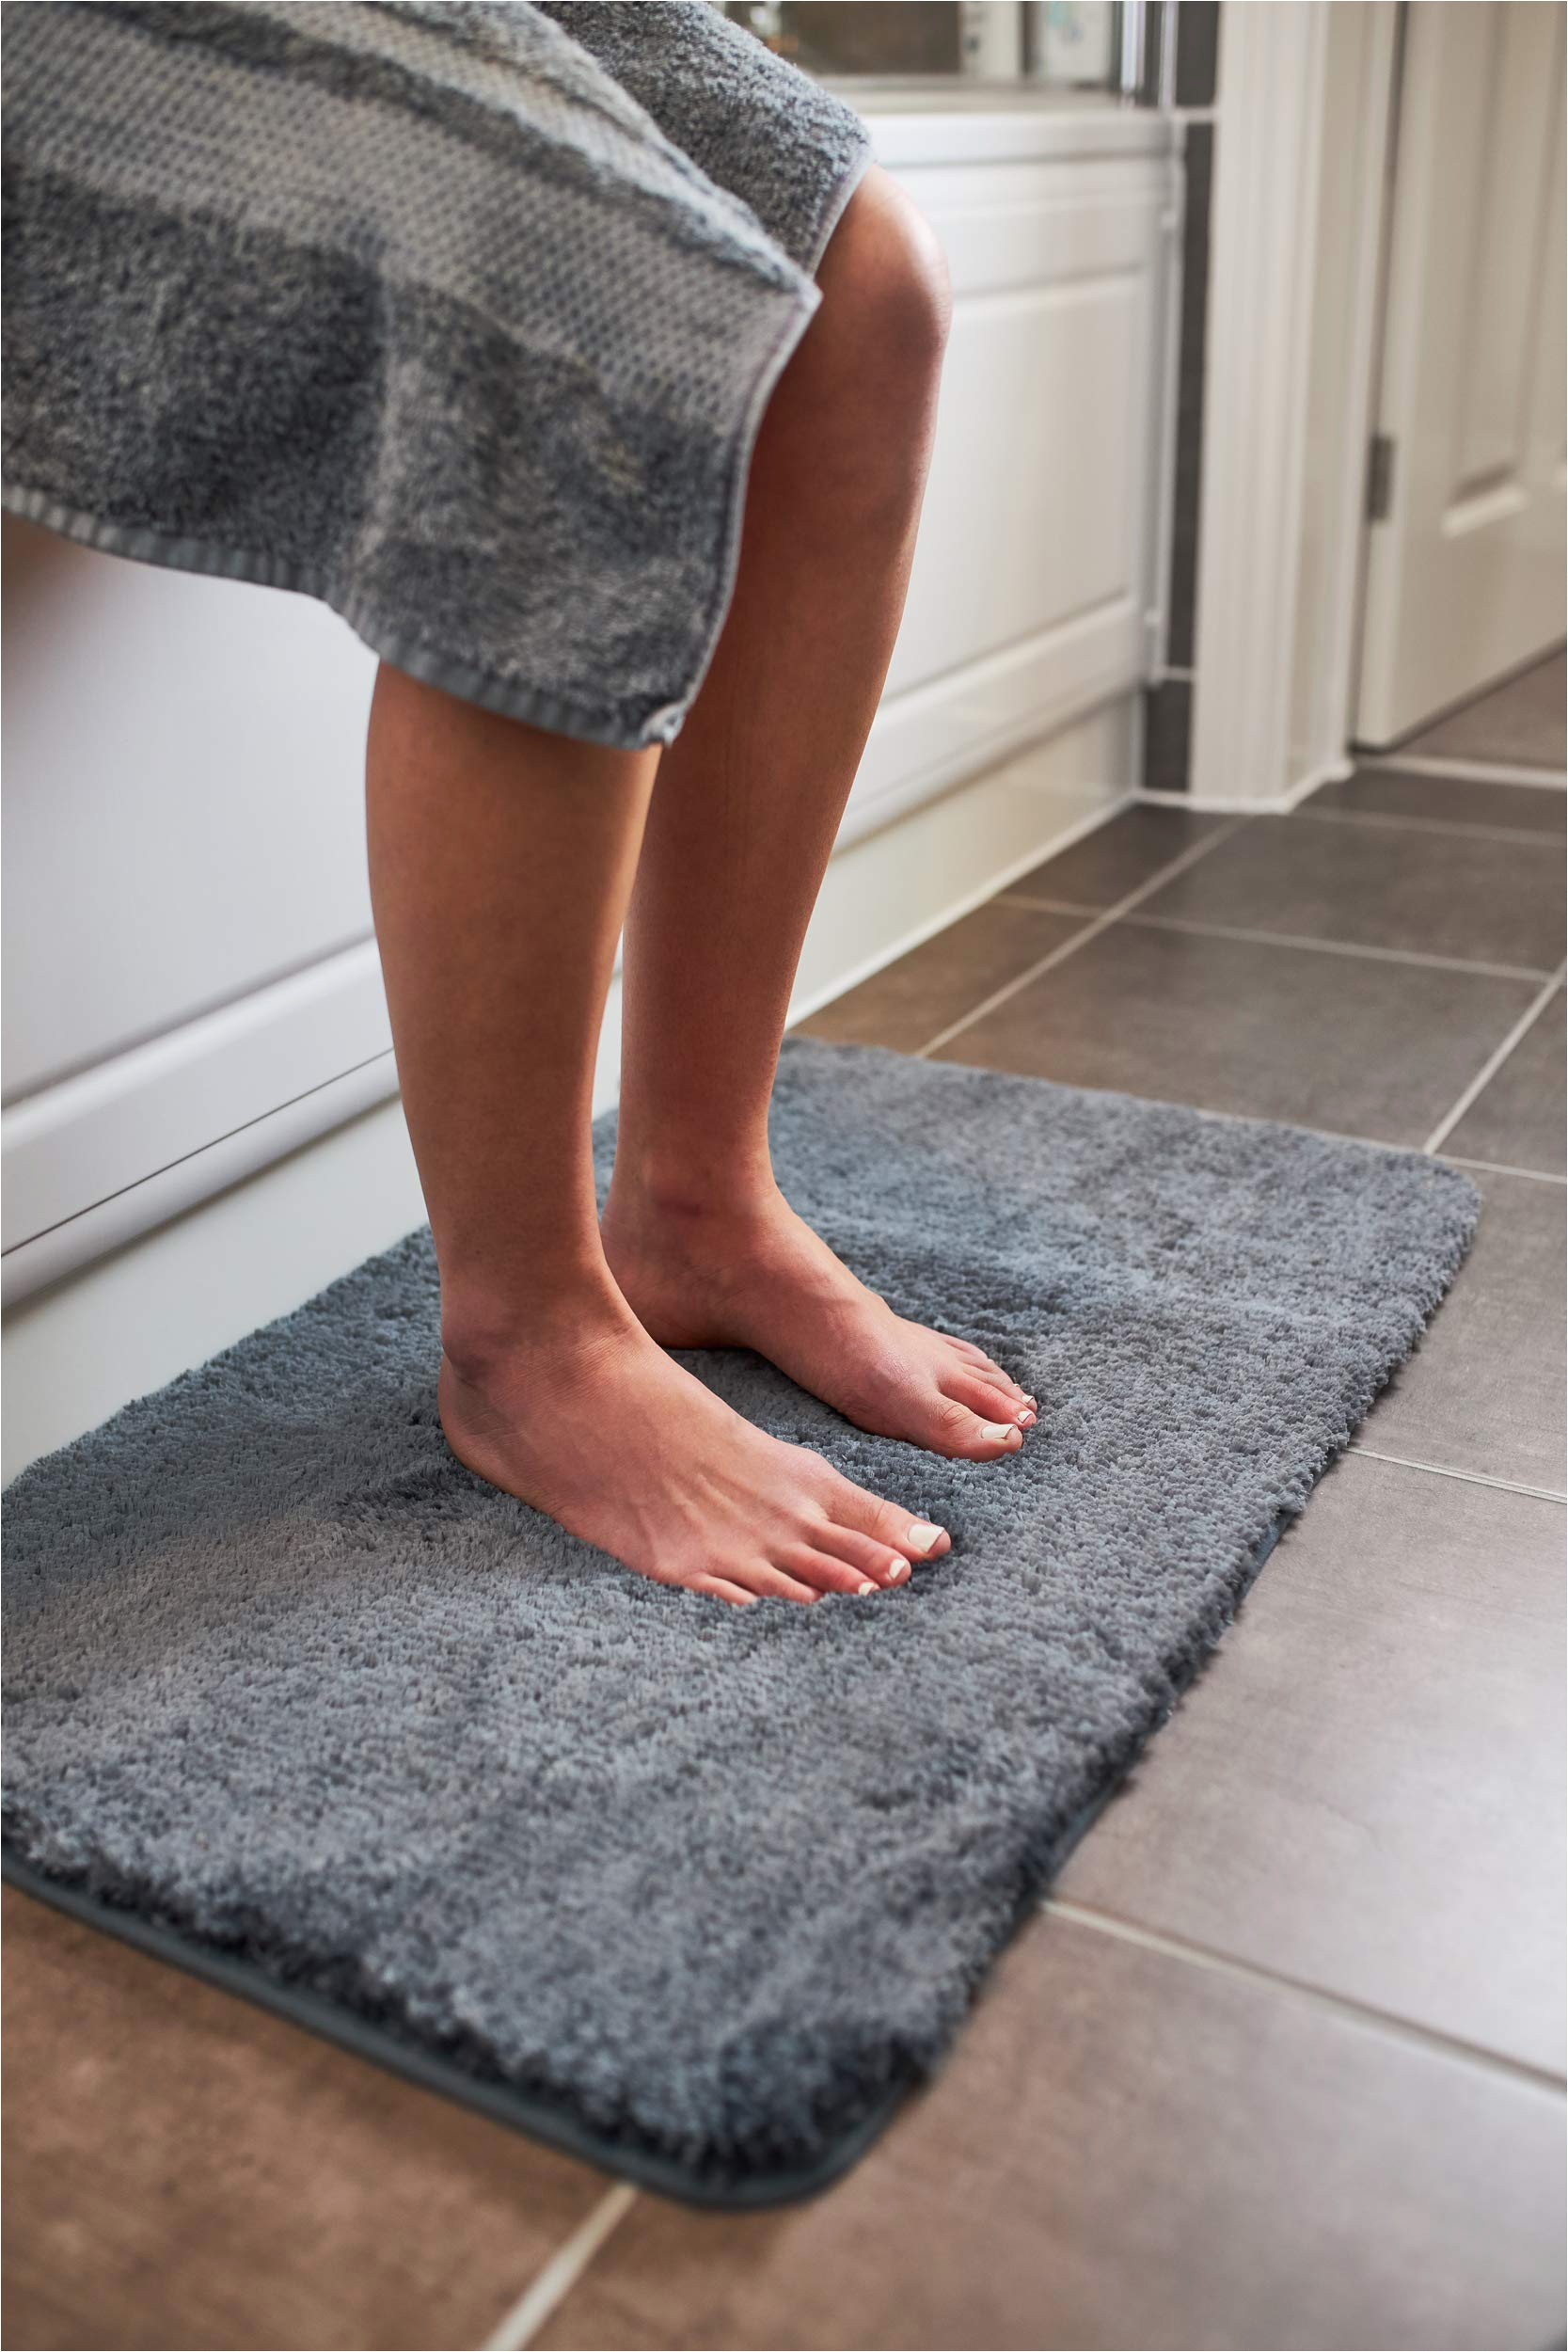 Non Slip Bath Rugs for Elderly Luxury Grey Bath Mat Microfiber Non Slip Bath Rug with Super soft Absorbent Dry Fast Design for Bath and Shower